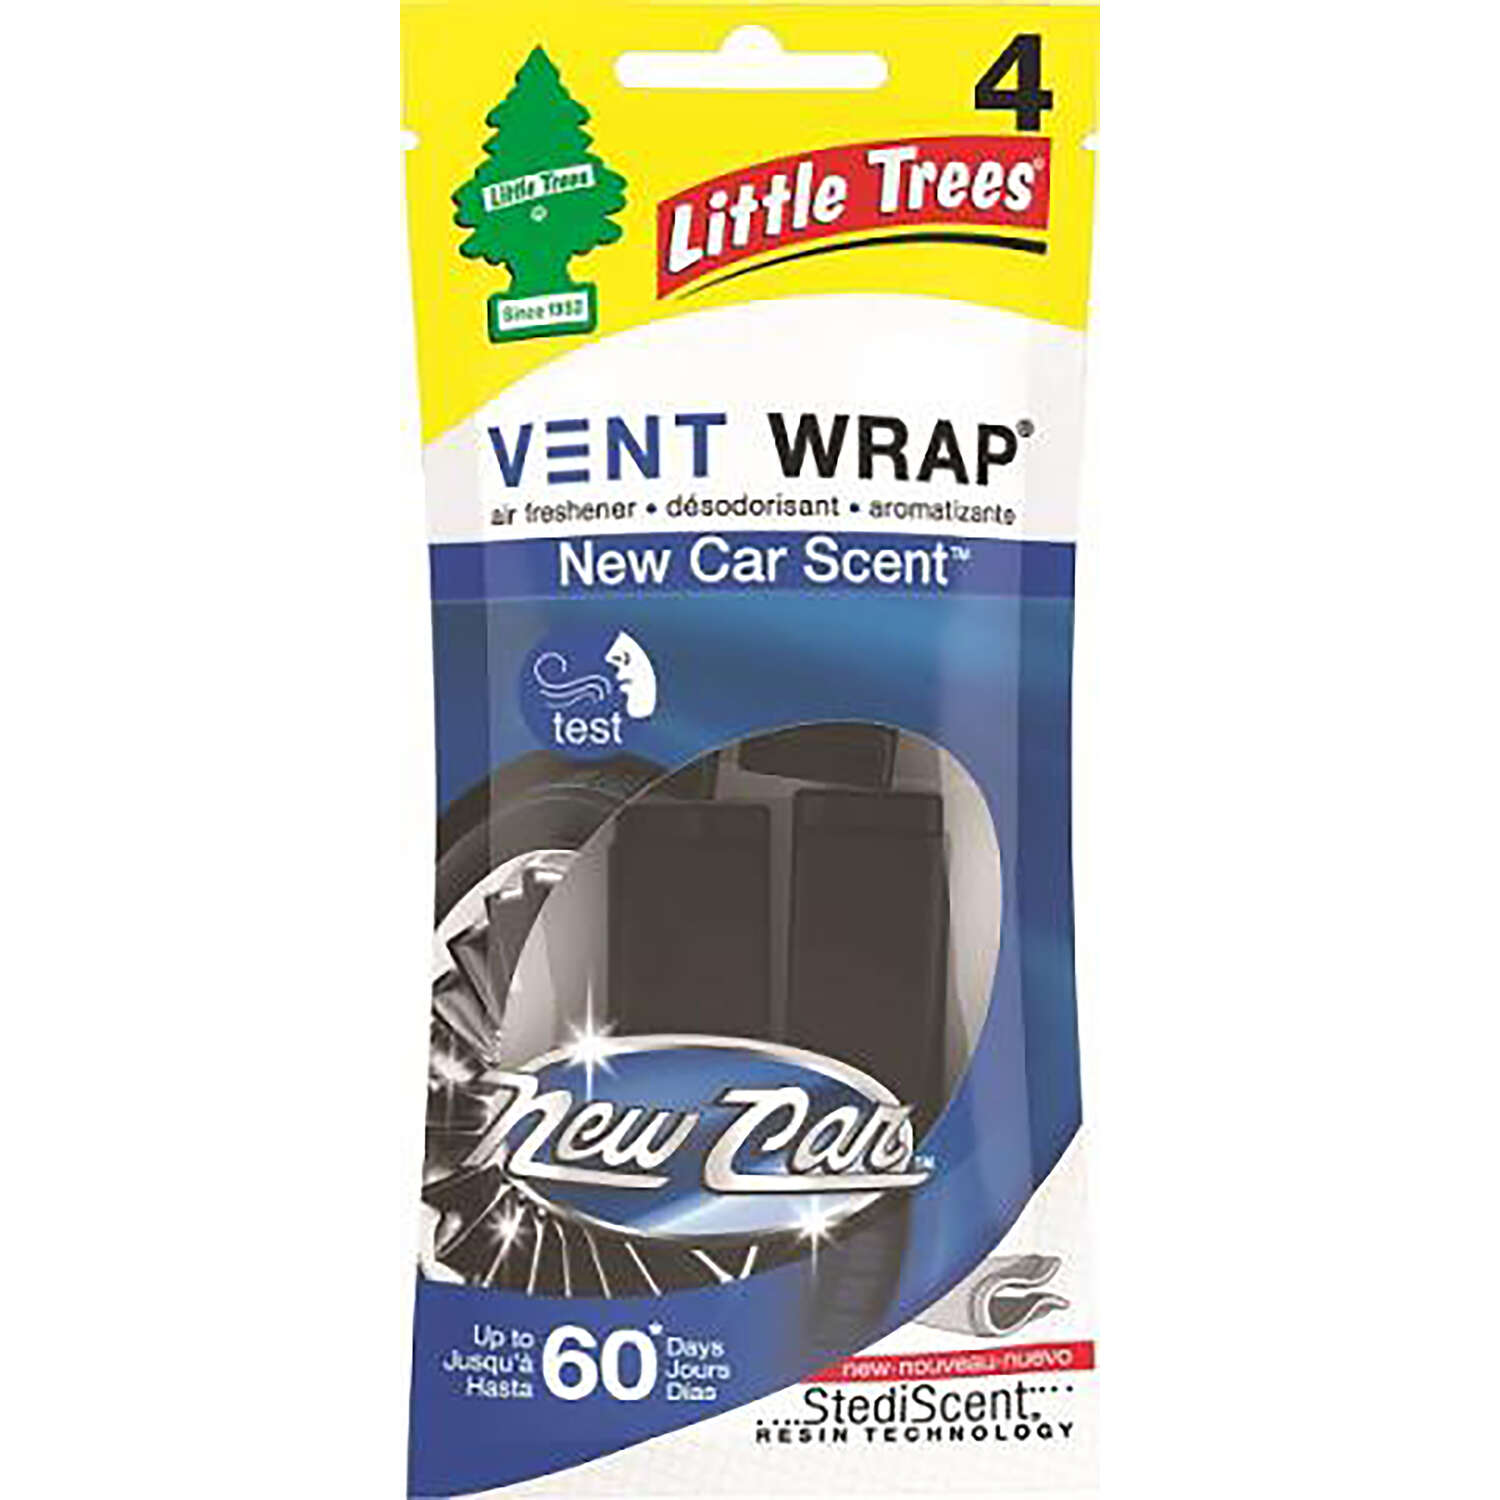 Little Trees  Vent Wrap  New Car Scent Car Air Freshener  4 pk